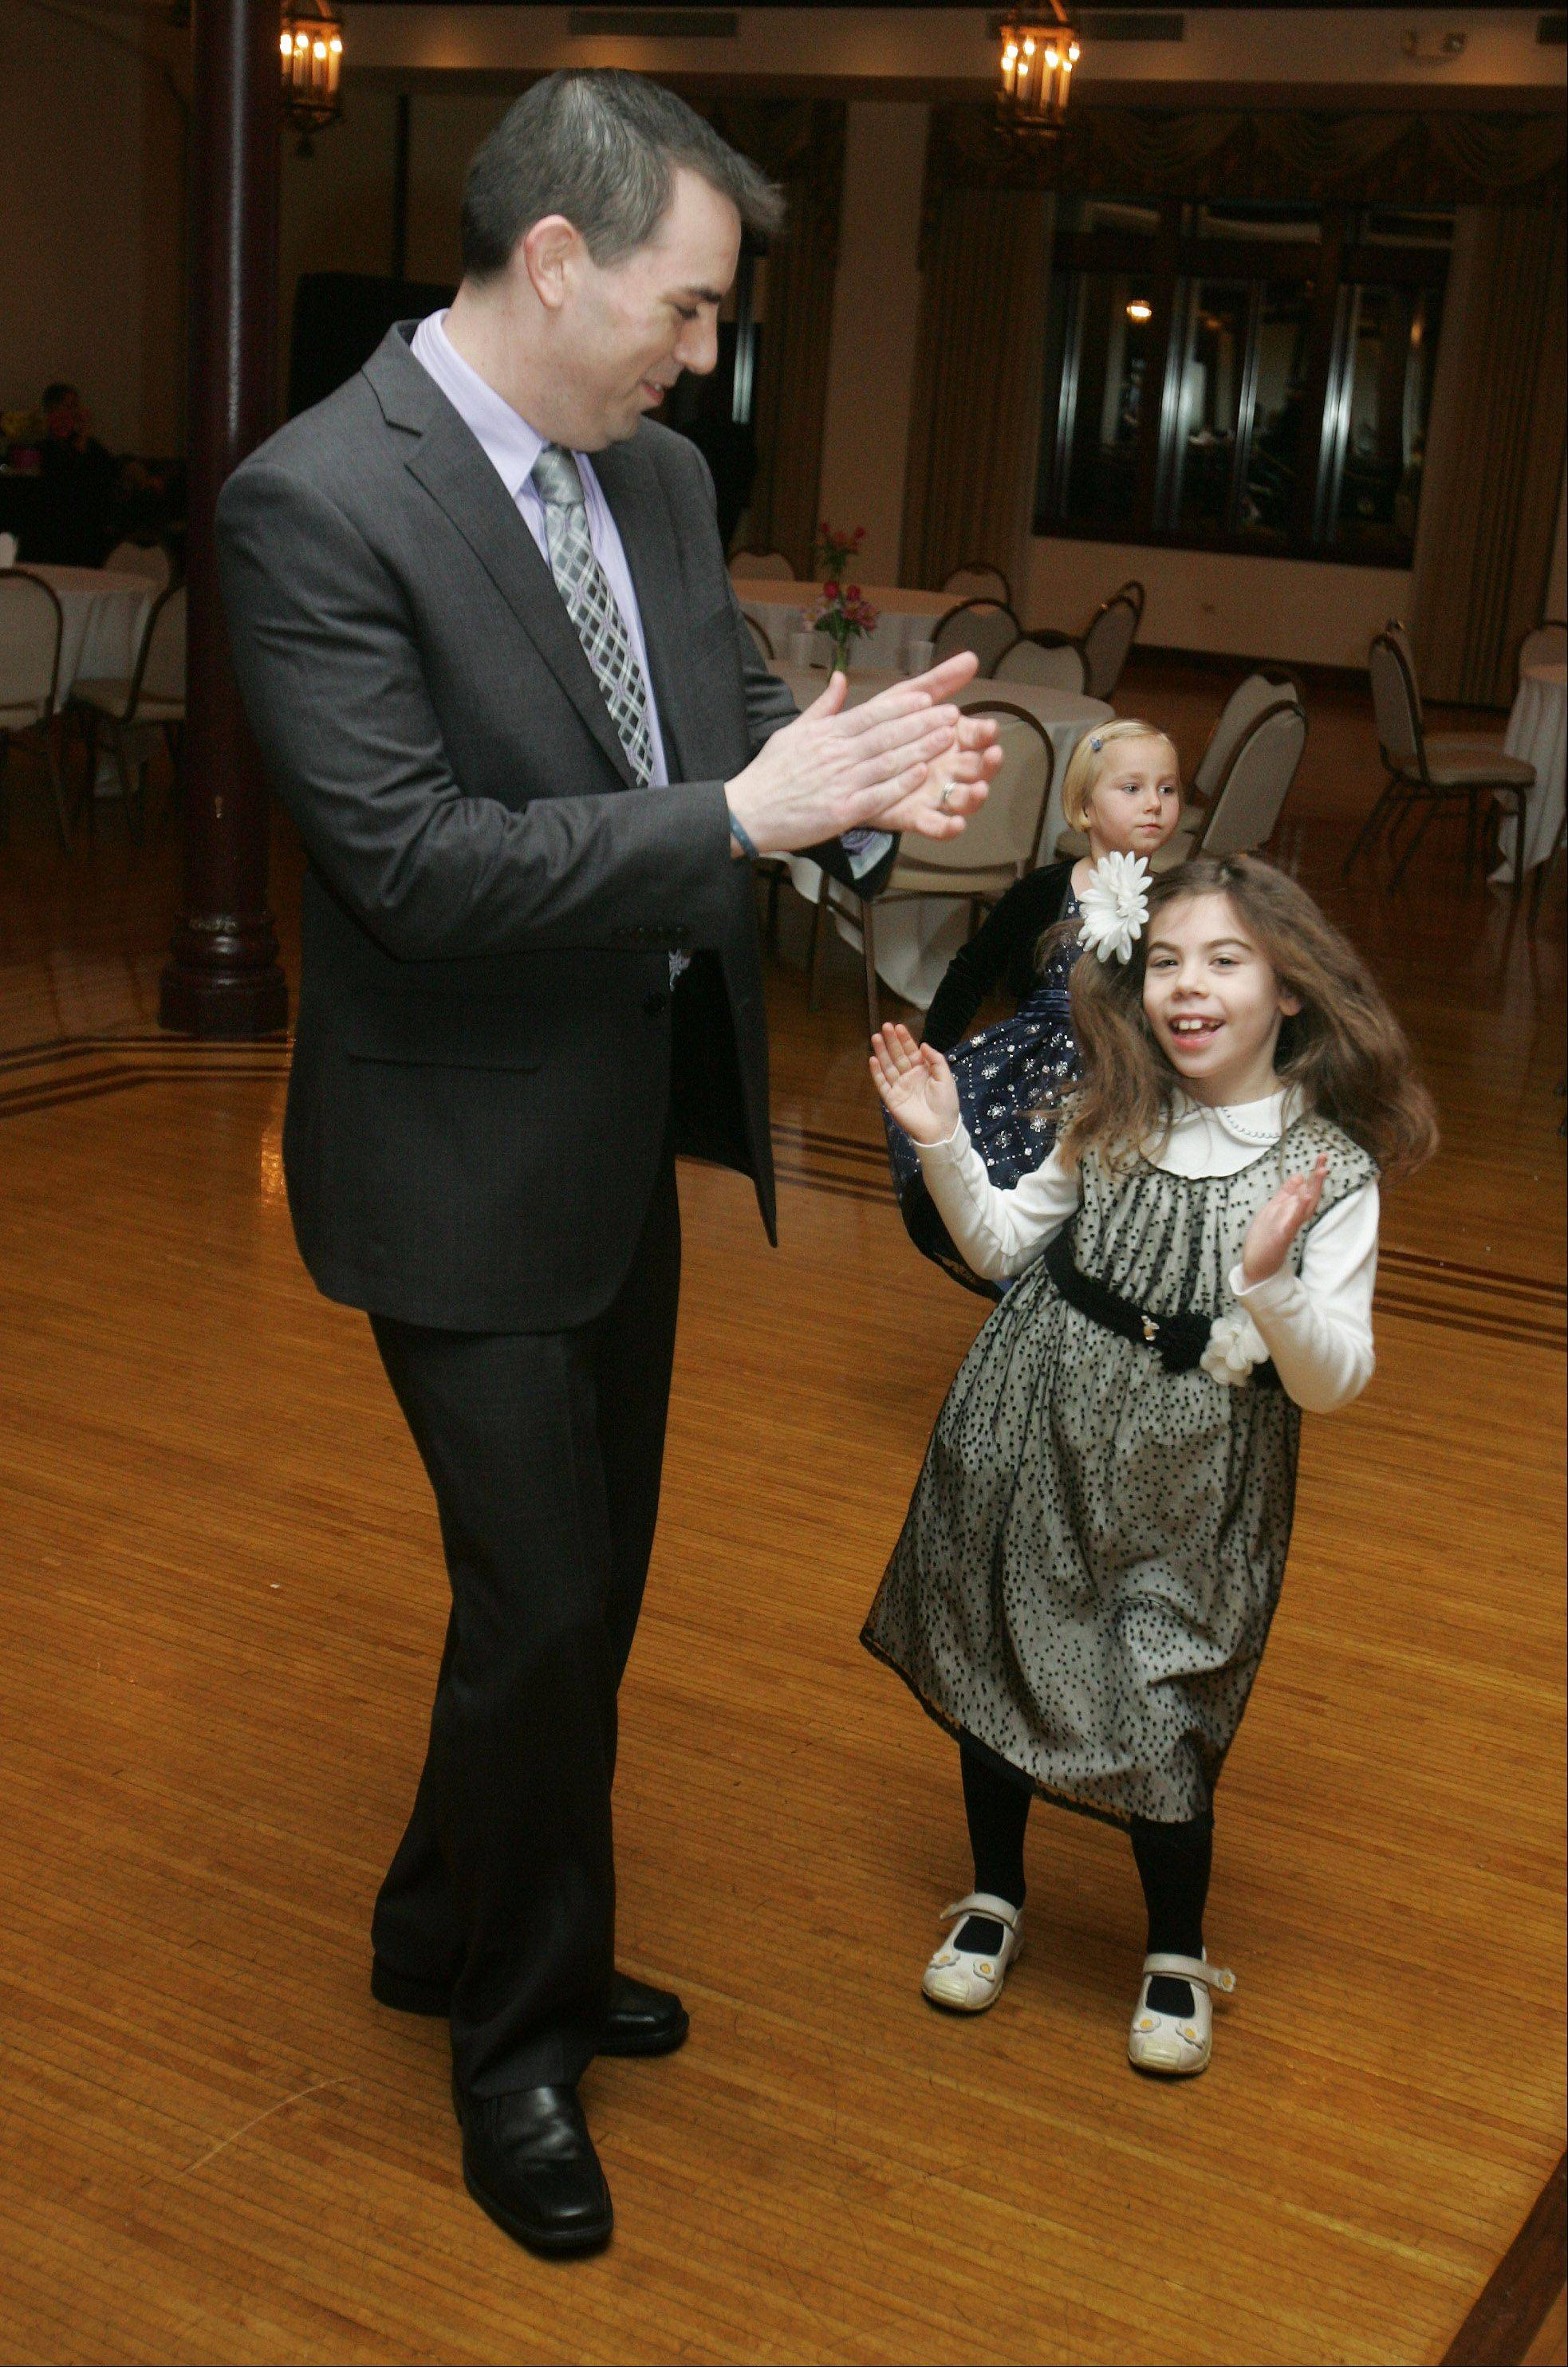 Zoey Perlman, 7, of Buffalo Grove, dances with her father, Sean, during the Valentine's Dance Sunday at the Chevy Chase Country Club in Wheeling. Raising Up Our Angels sweetheart dance was sponsored by the Kiski Valley Veterans and Patriots Association to support the Wounded Warrior Project.